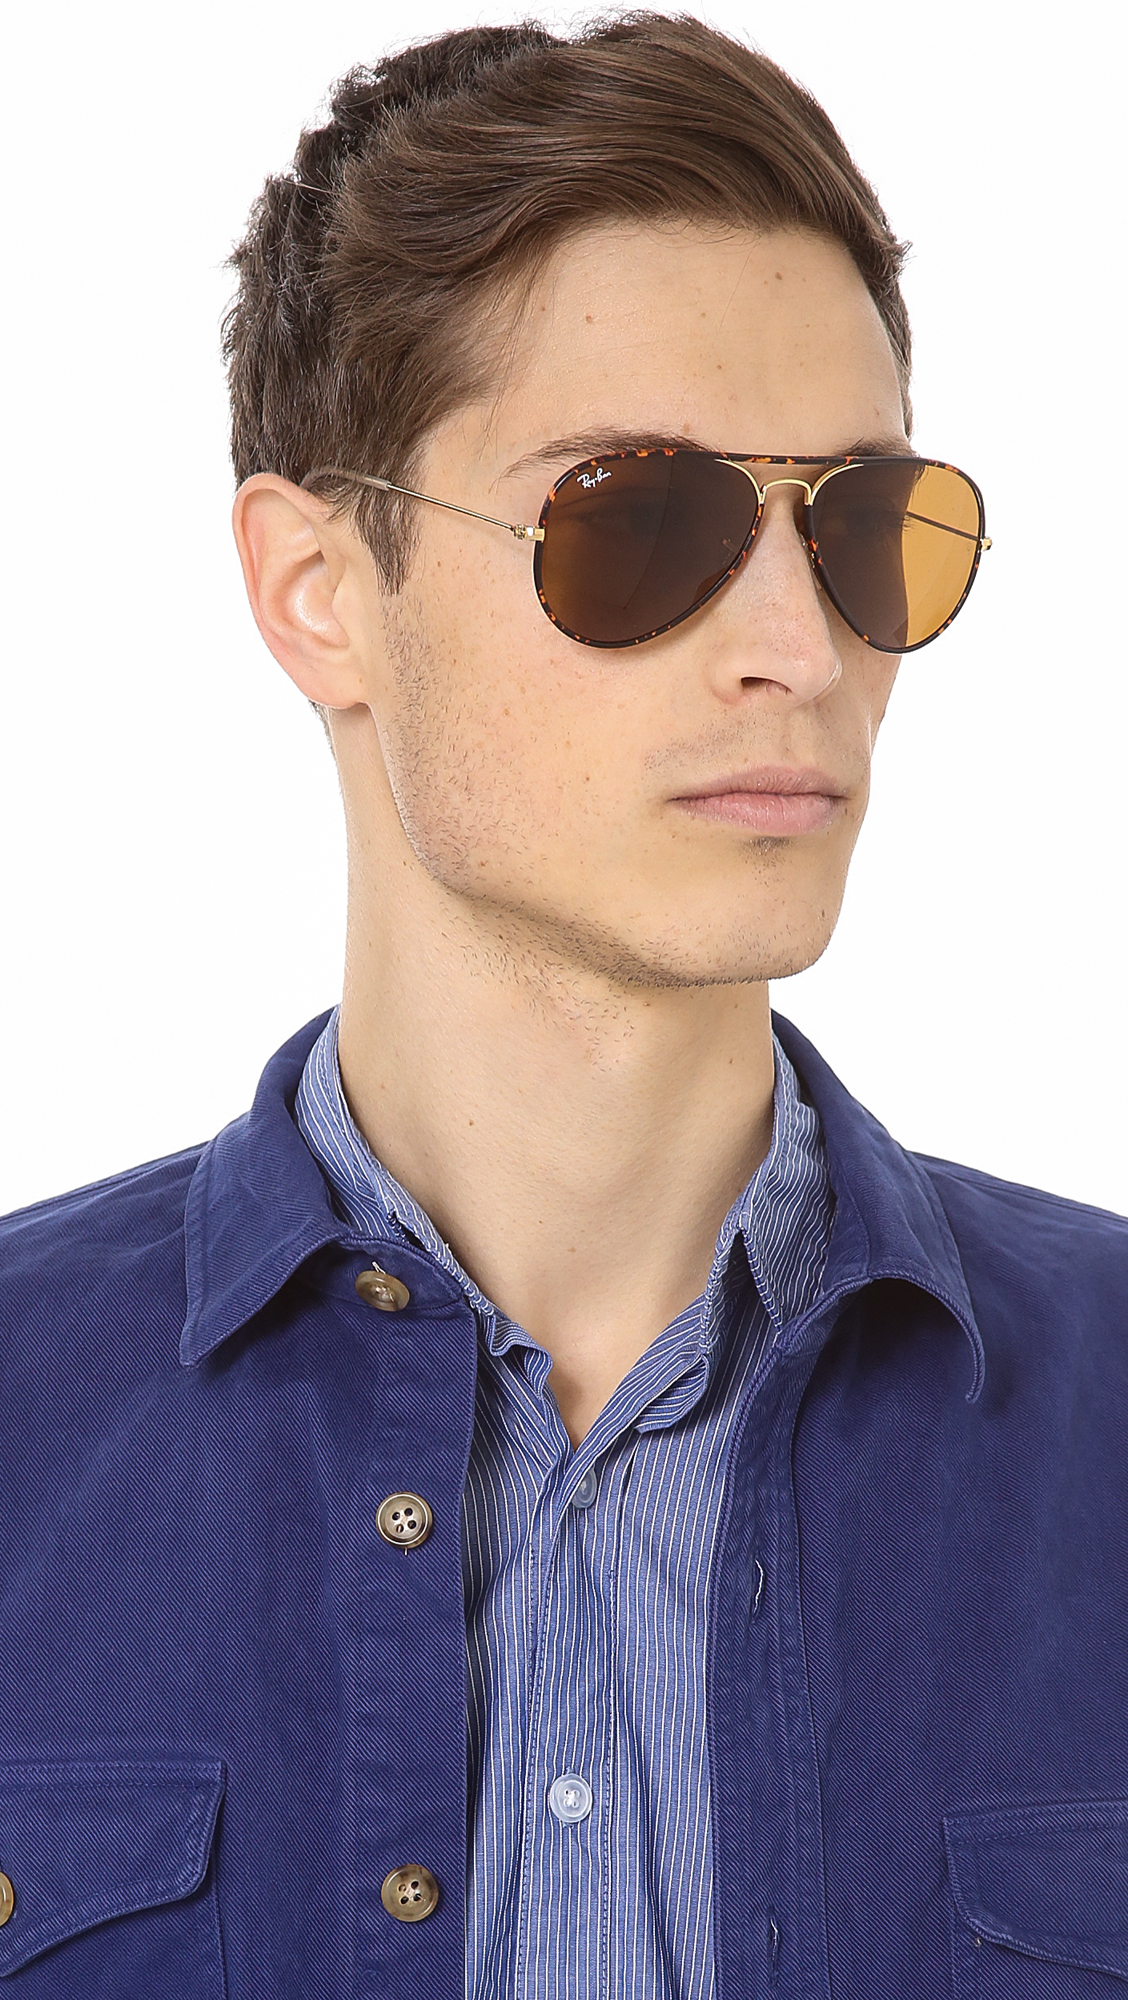 645620fd91 Lyst - Ray-Ban Aviator Sunglasses in Brown for Men